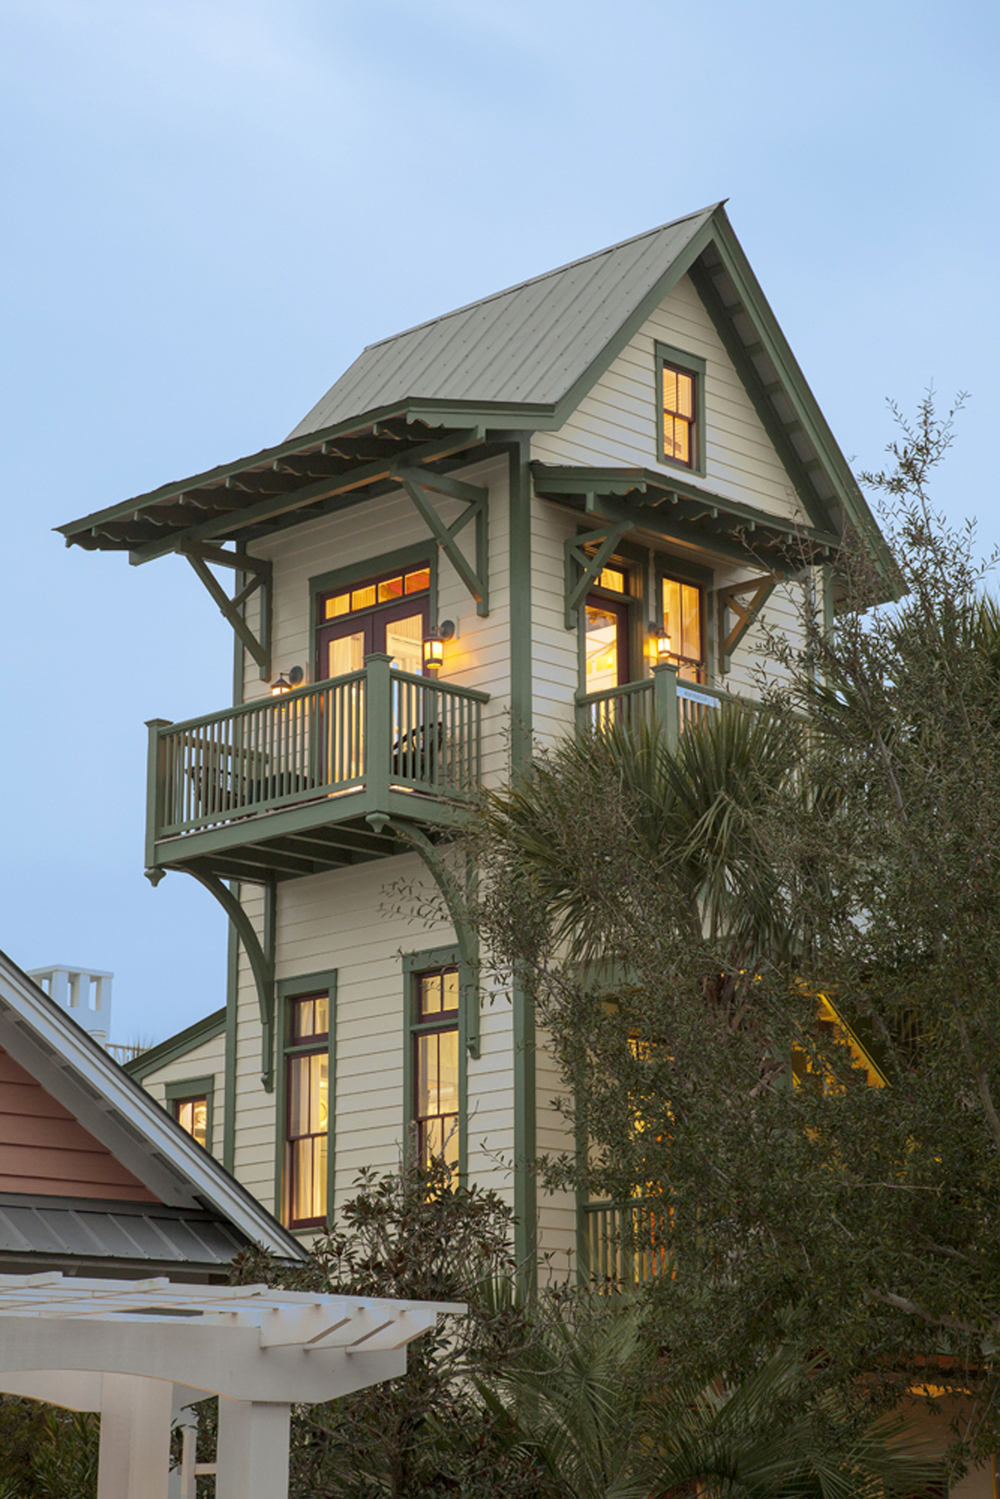 Seaside_Florida.Beach.Natchez_House.New_Urbanism.CNU.Courtyard.Walkable.Robert_Orr_&_Associates.Architecture.Landscape_Architecture.Urbanism.Guest_House.Oak_Creek_Annie.jpeg